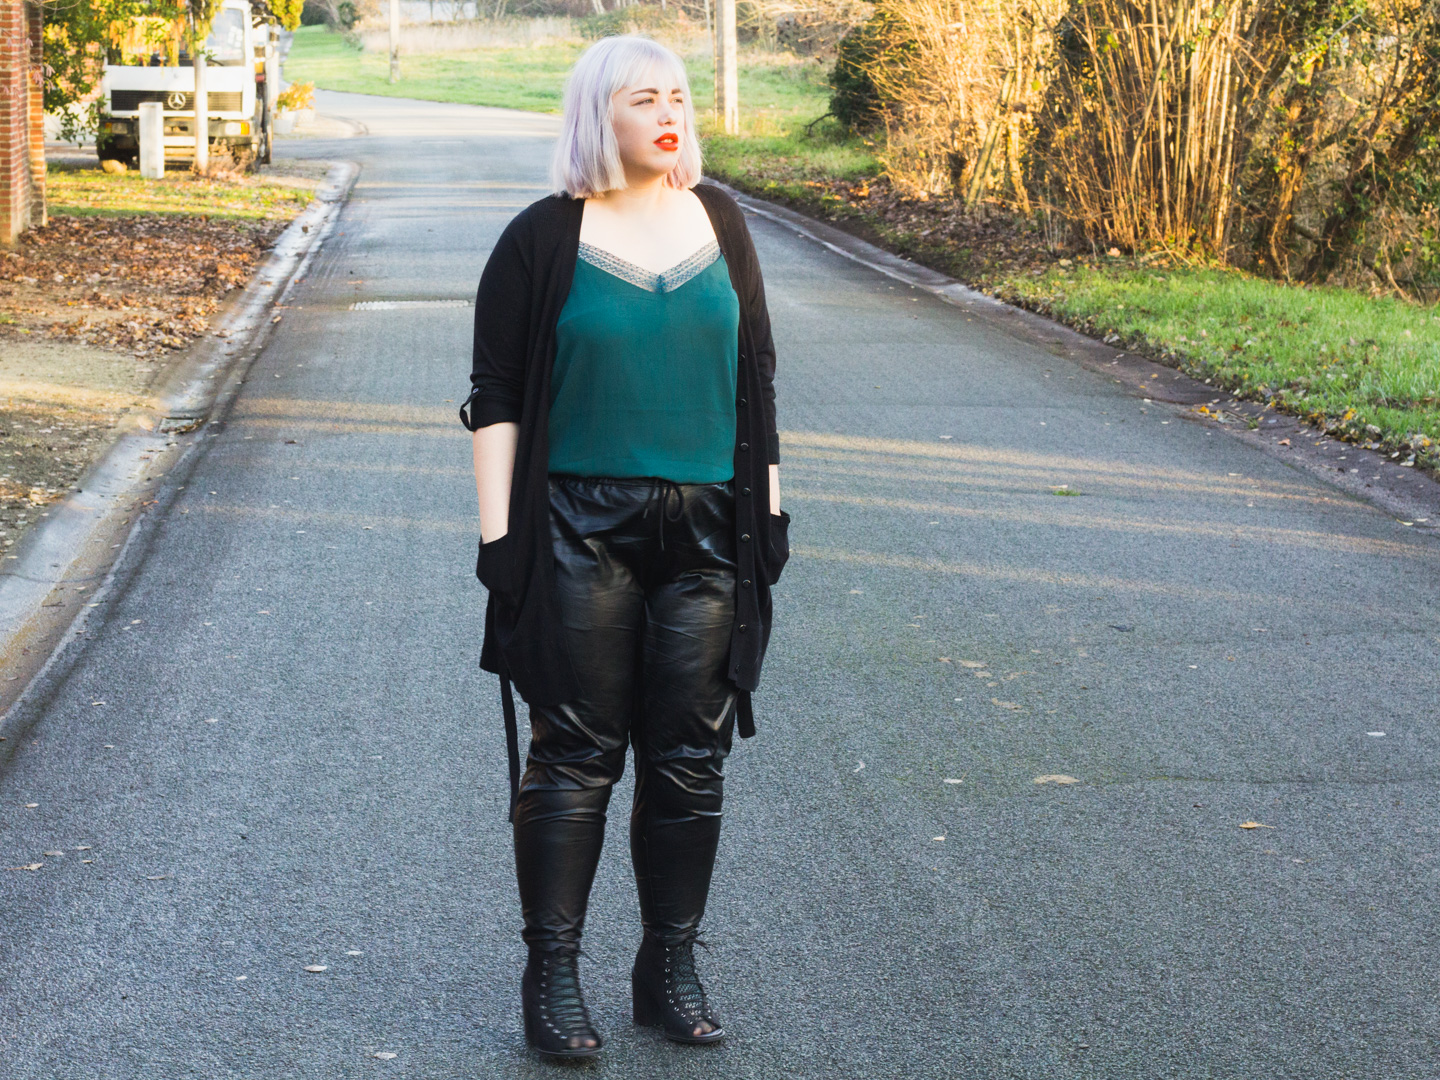 OOTD: elegant in leather & lace